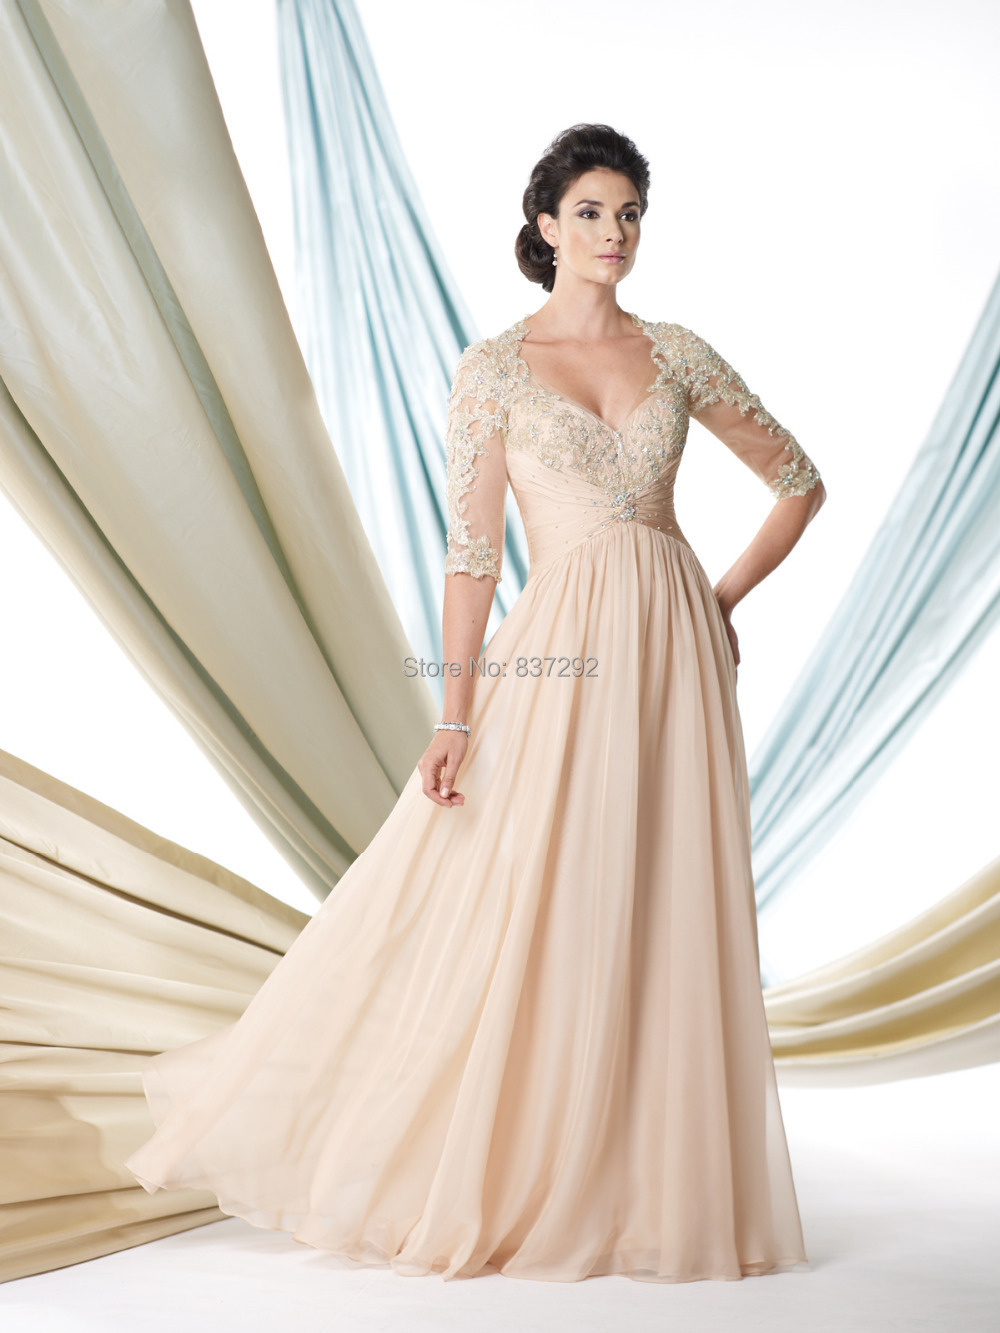 Gorgeous Champagne Long Mother of the Bride Dresses 2015 Lace God Mother  Gowns Half Sleeve Beaded Vestido de Festa-in Mother of the Bride Dresses  from ... 60f6582f68f5